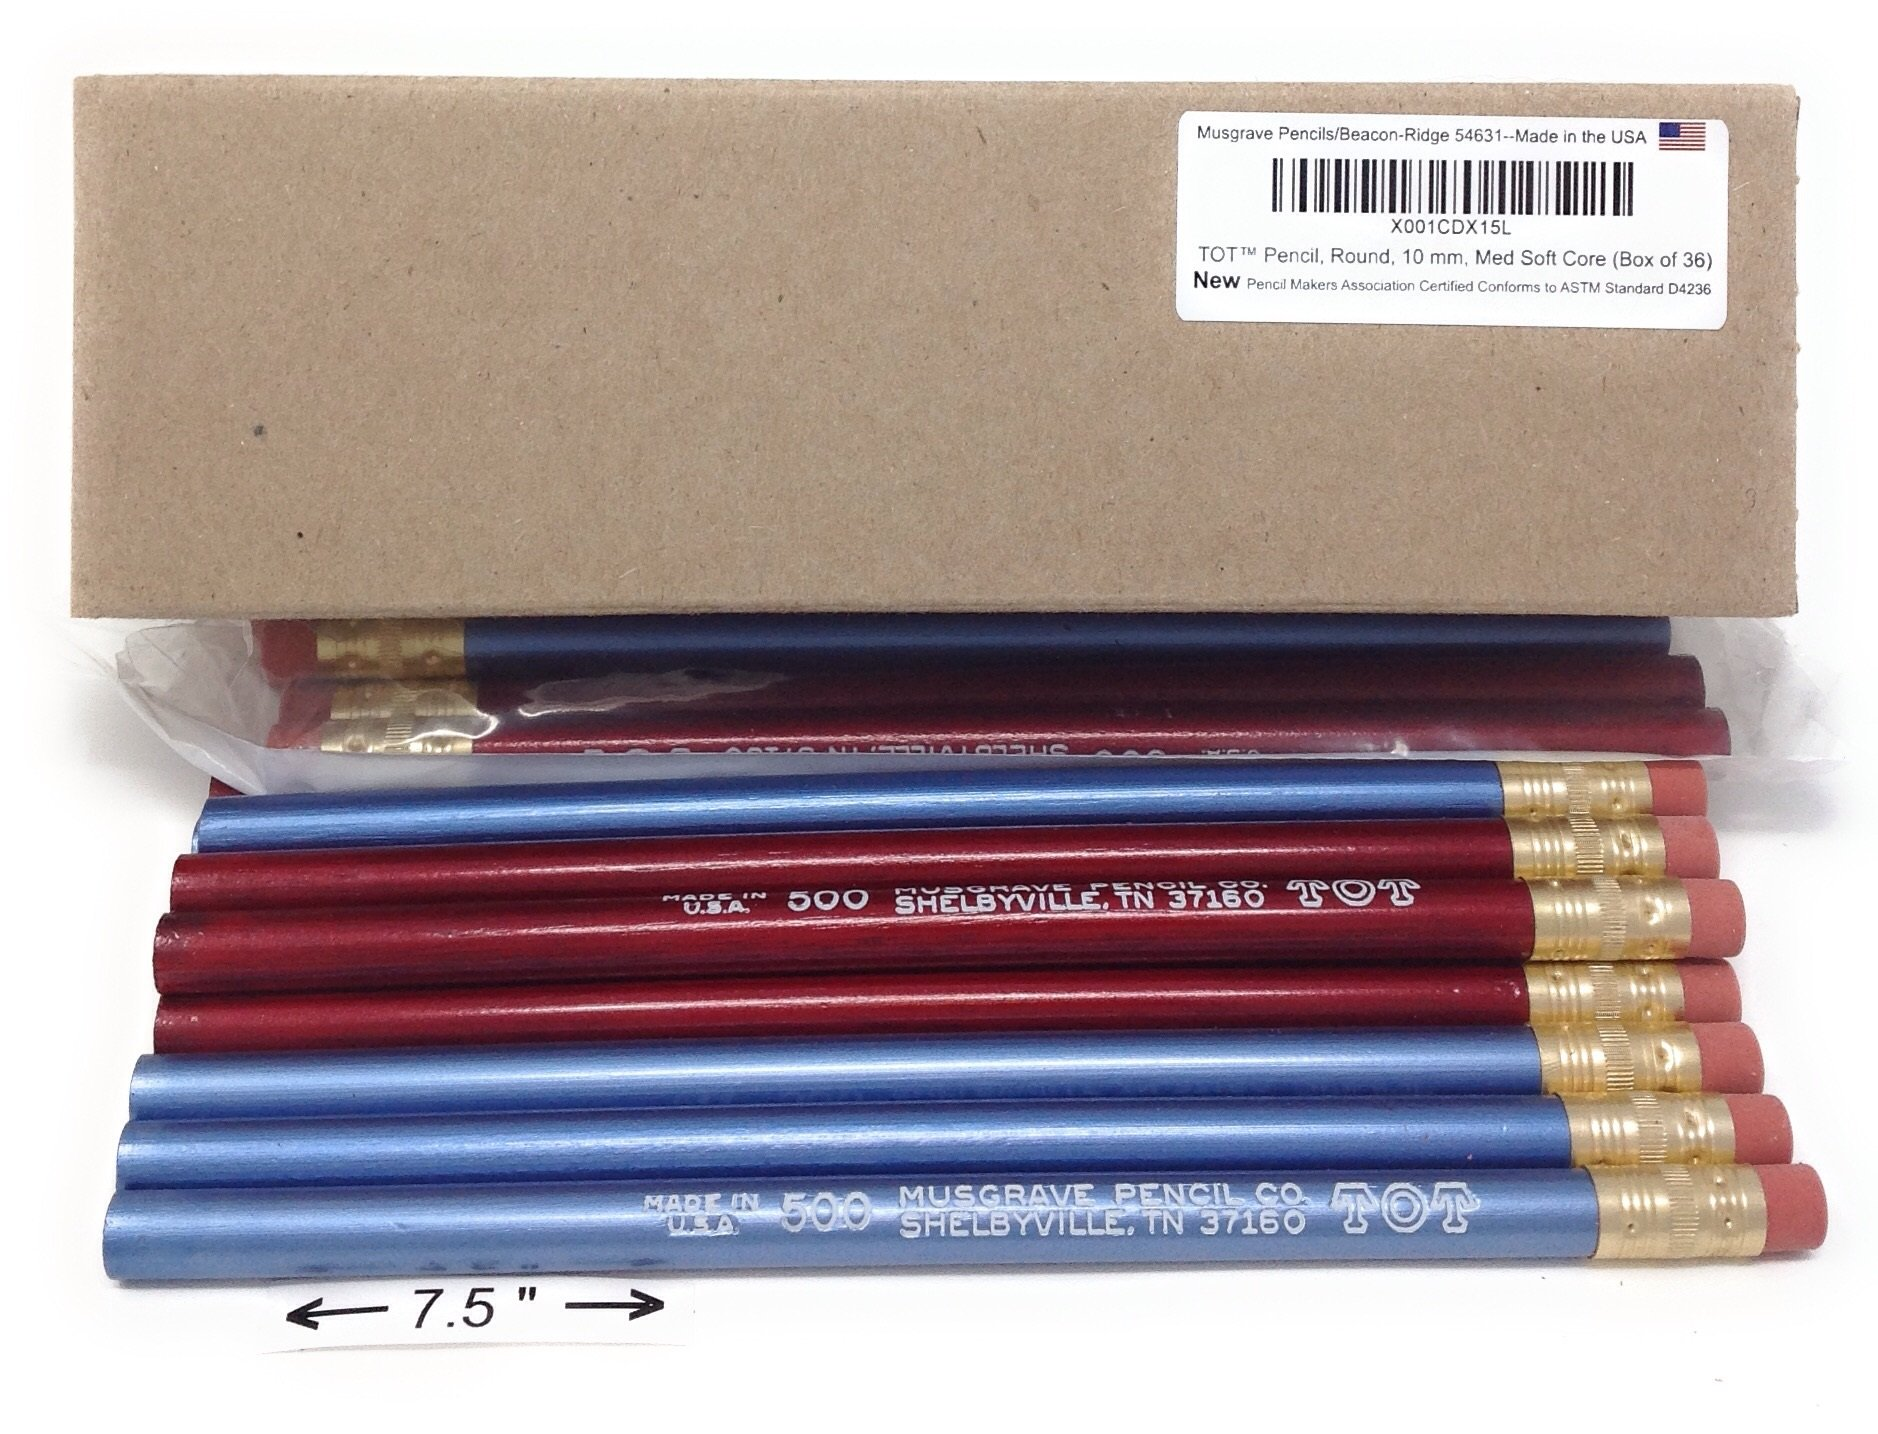 Jumbo TOT pencil, Round, 10mm Metallic Blue and Red, Med Soft Core (Box of 36) by Musgrave Pencils/beacon-ridge